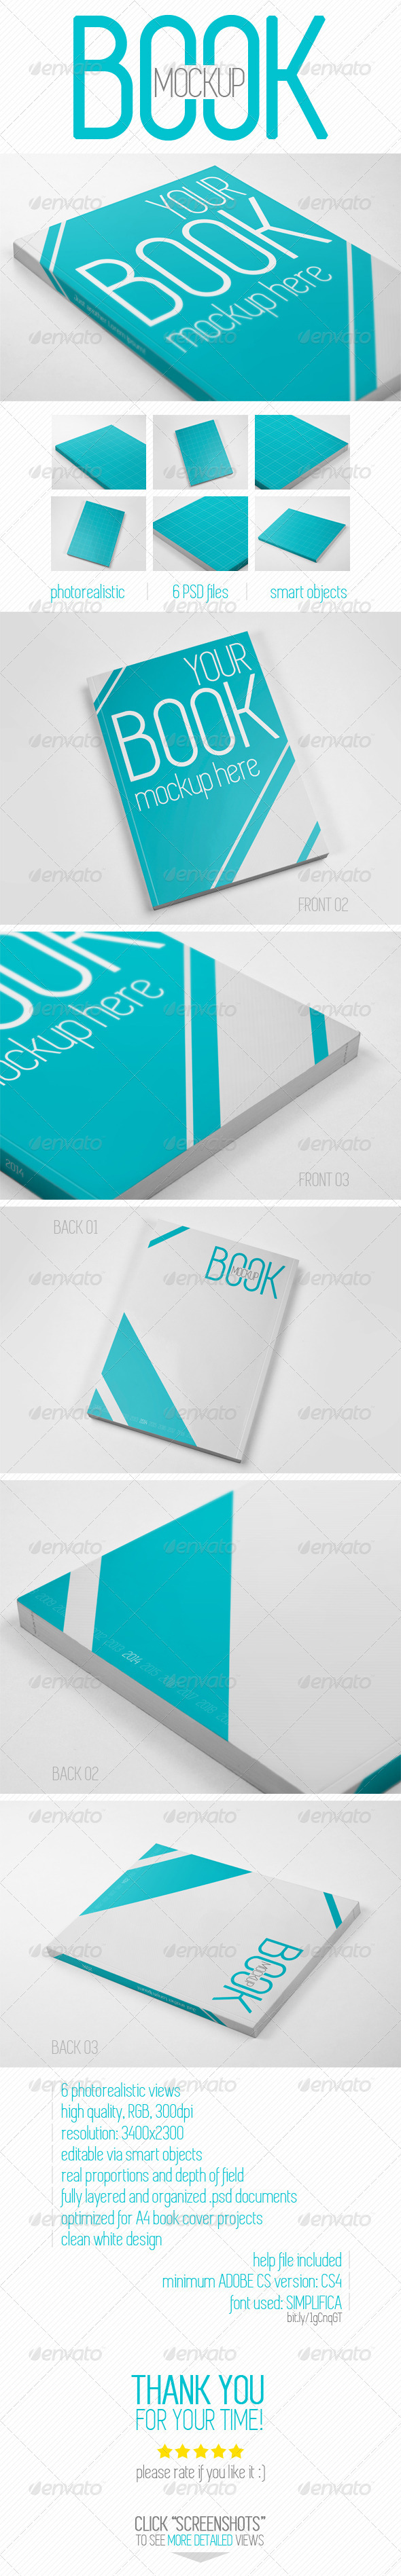 Book Cover Graphicriver : Book cover mockup by krzysztofbobrowicz graphicriver